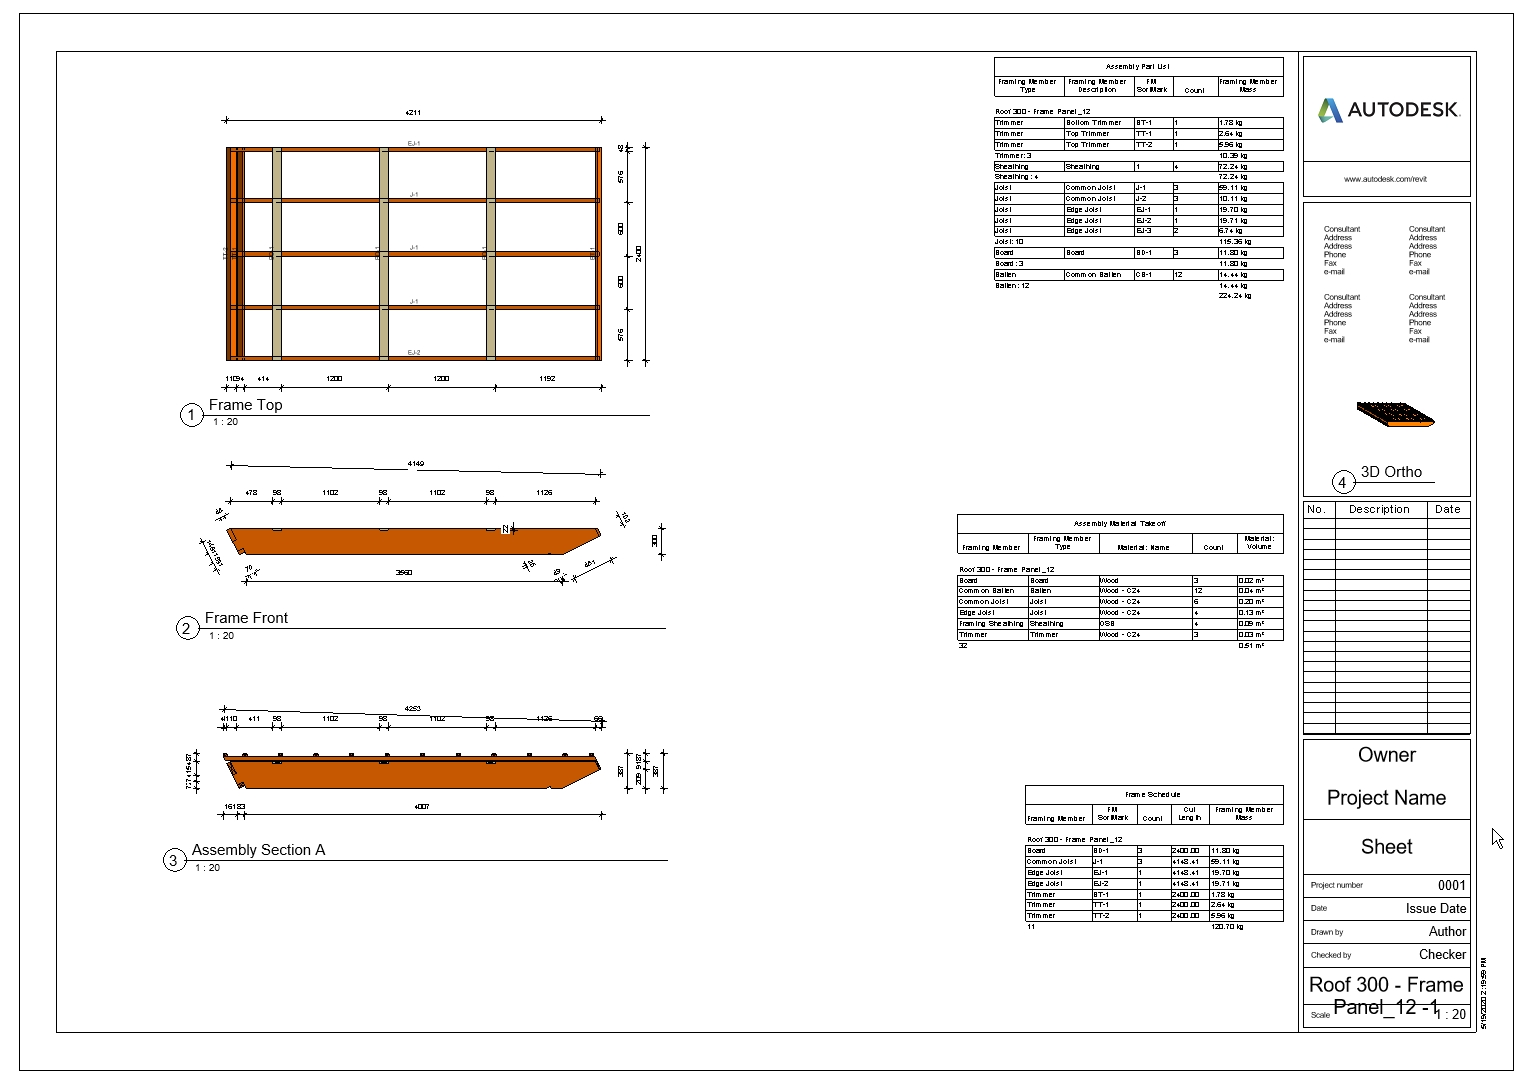 generate views, dimensions, tags, and schedules in the blink of an eye using AGACAD Roof Framing BIM tools for Autodesk Revit